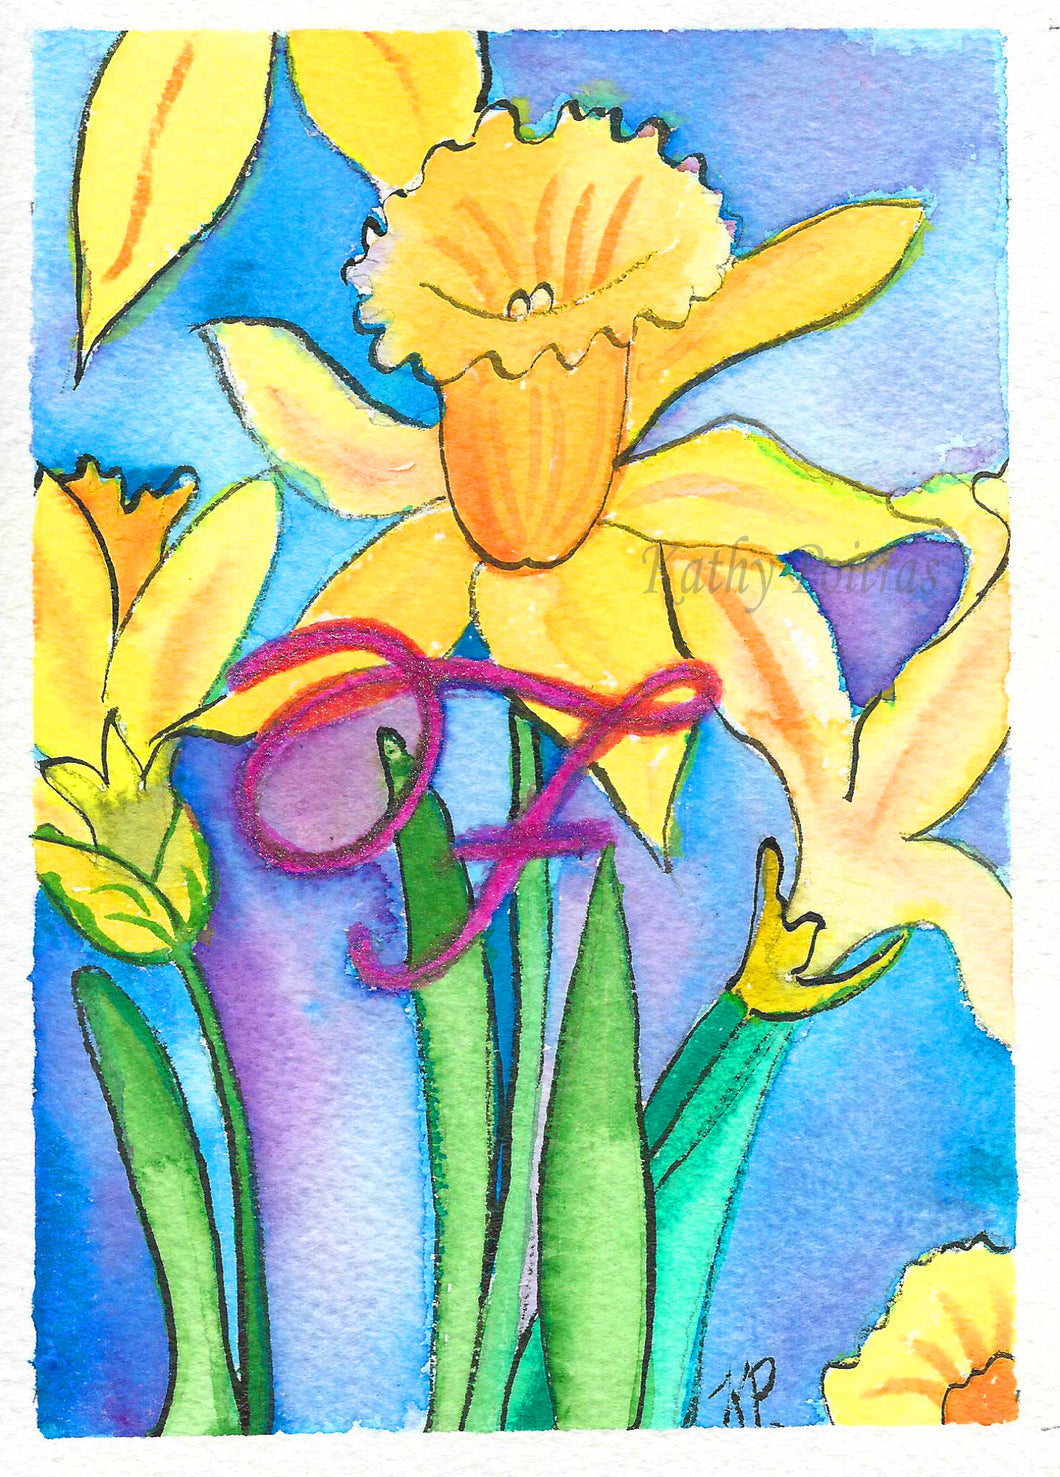 Greeting Card, Birthday Card, Mothers Day Card, Daffodils are the flower of the month for March. This flower of the month card is personalized with a fancy letter F.   by artist Kathy Poitras